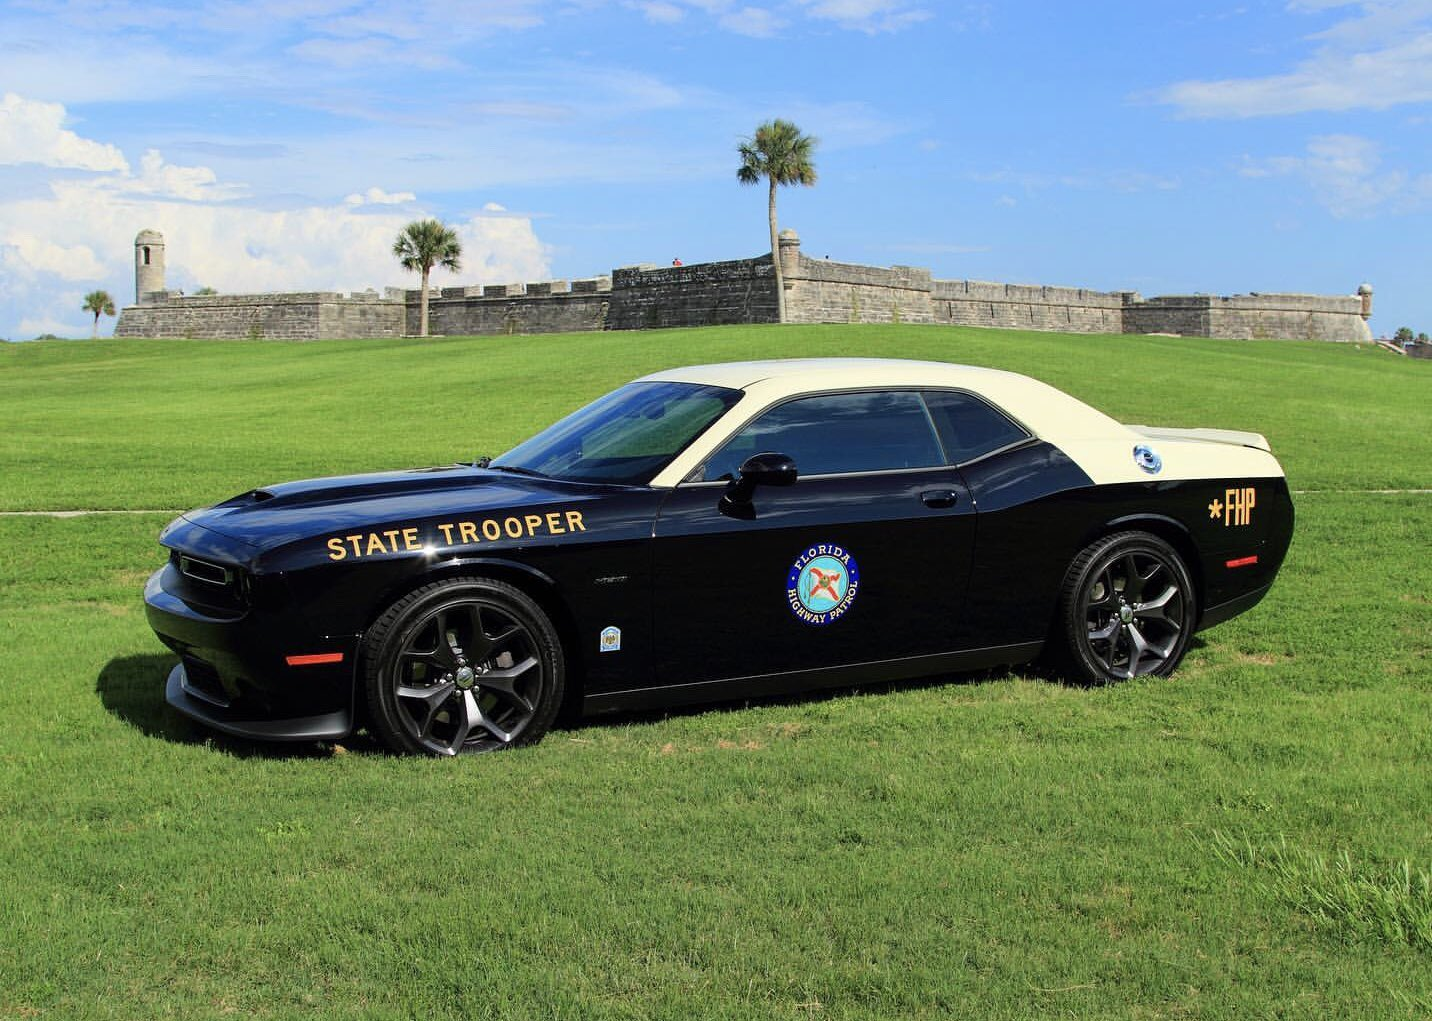 1970s NC State Highway Patrol car - Plymouth Fury ...  |1970 Police Cars Florida